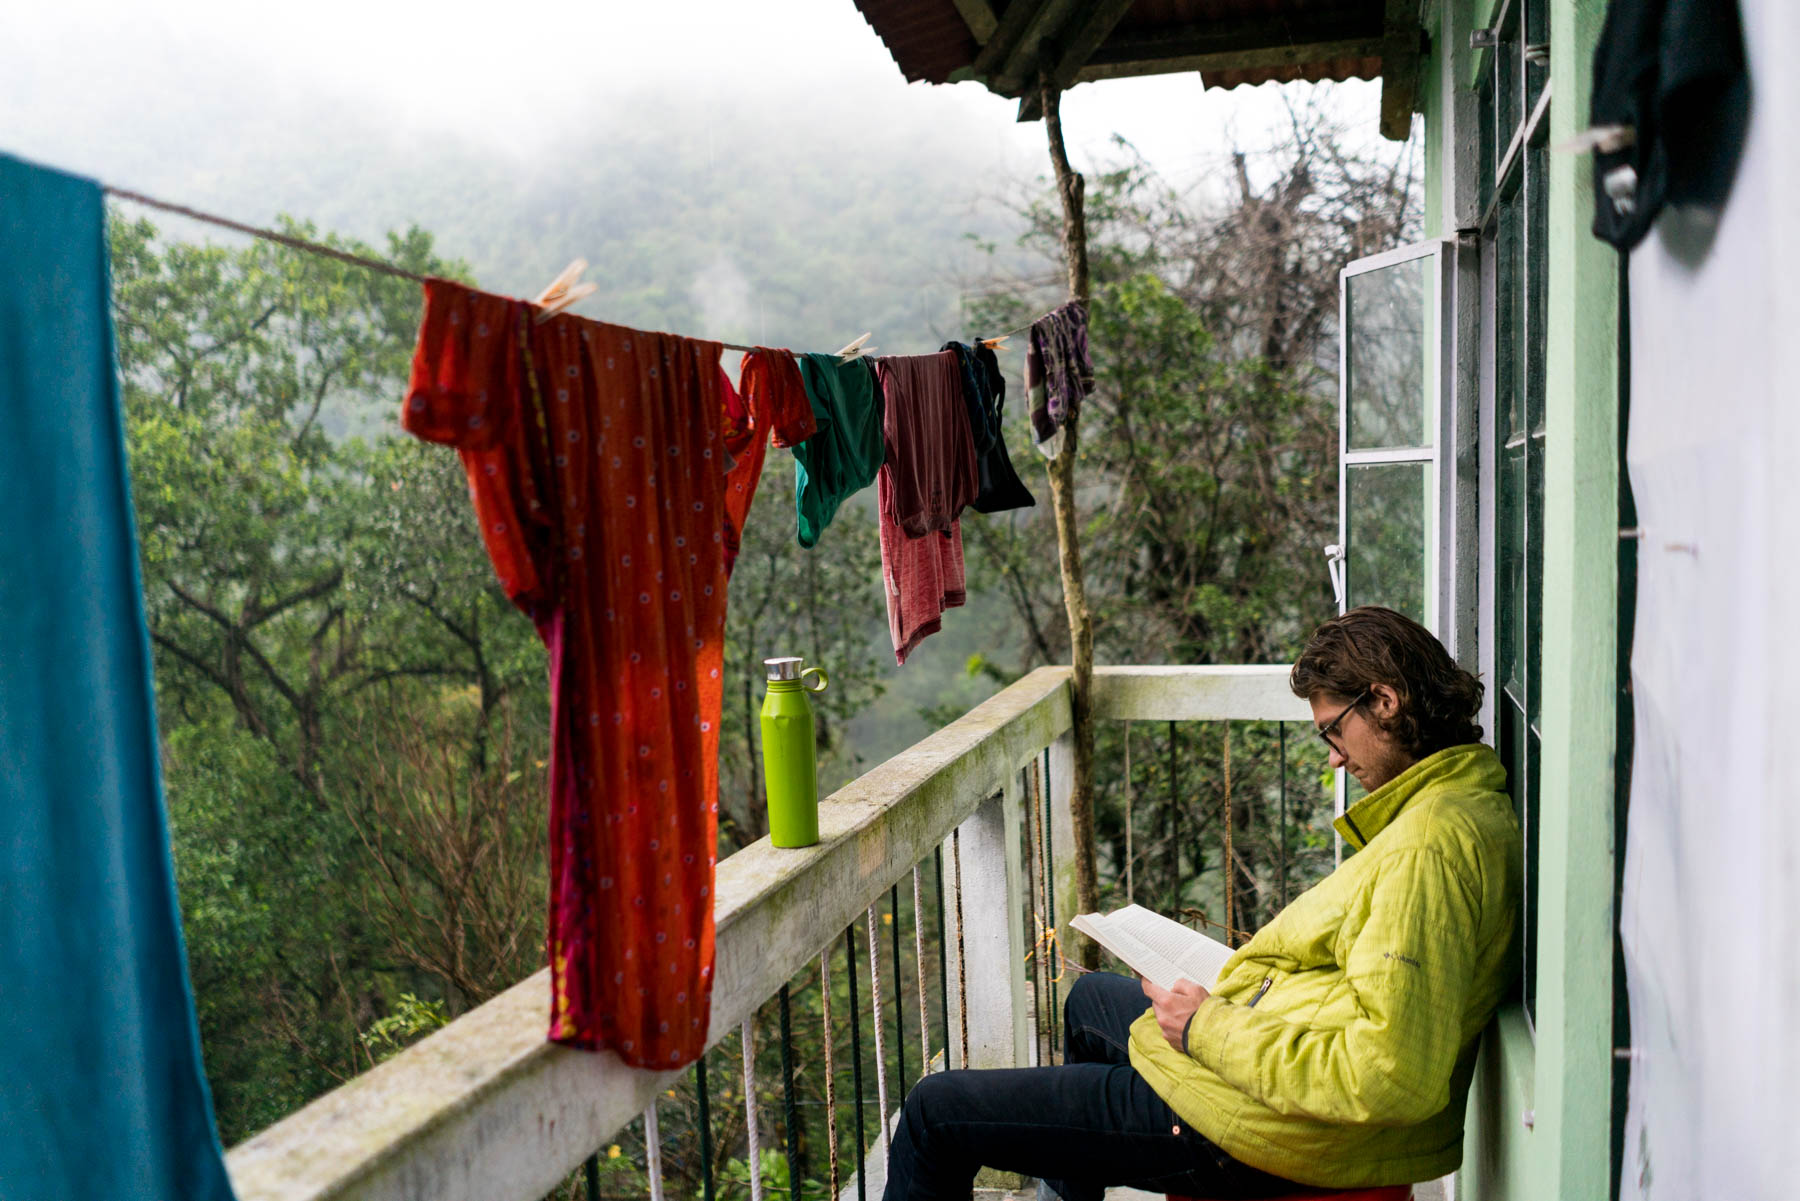 Photo essay of Nongriat and the living root bridges of Meghalaya, India - Sebastiaan reading in the rain - Lost With Purpose